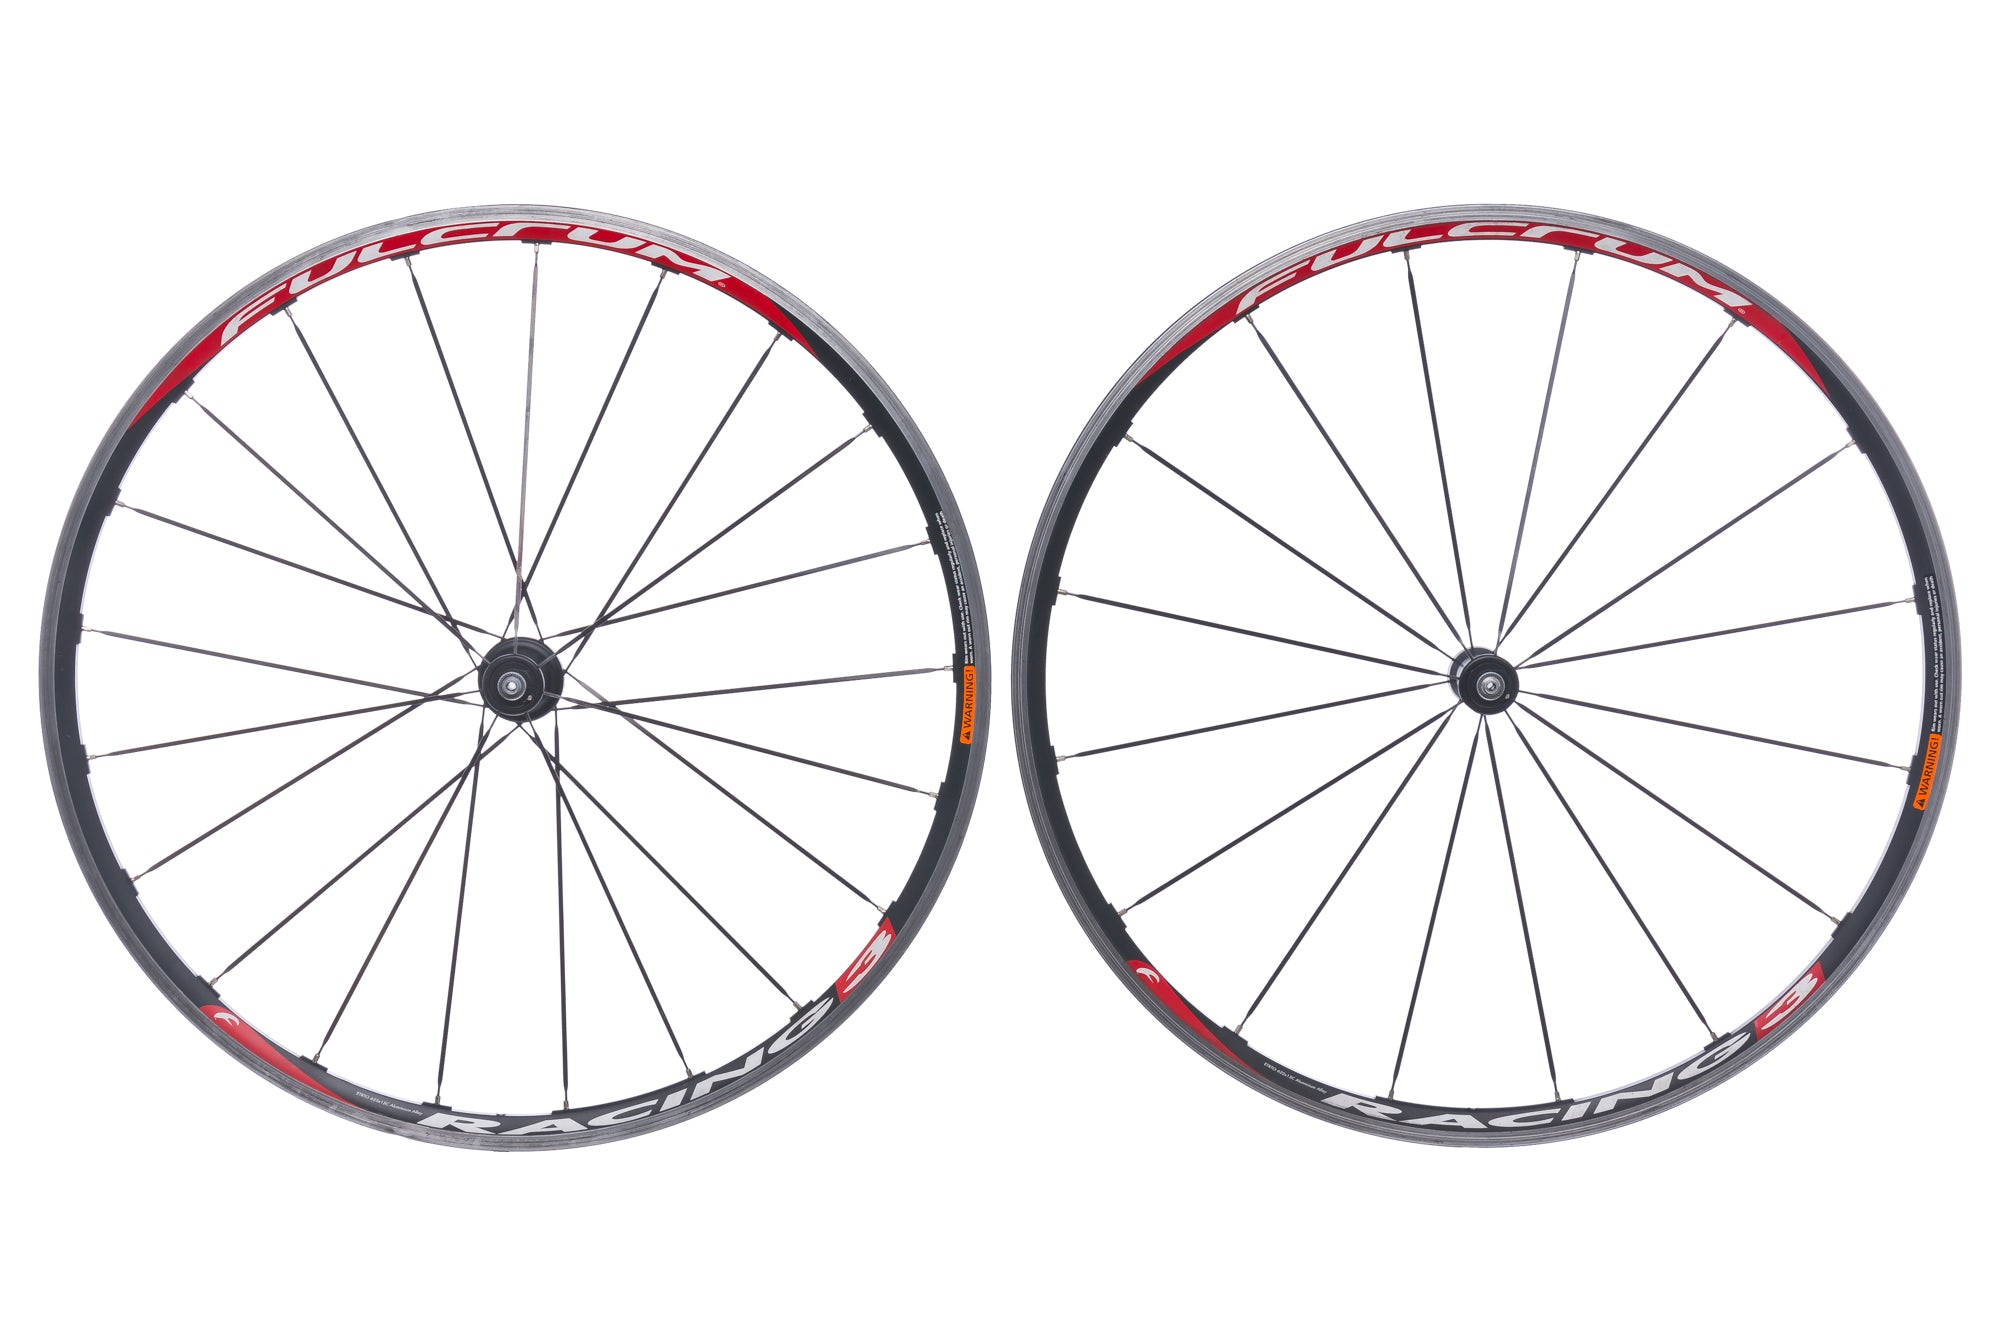 Fulcrum Racing 3 Aluminum Clincher 700c Wheelset drive side